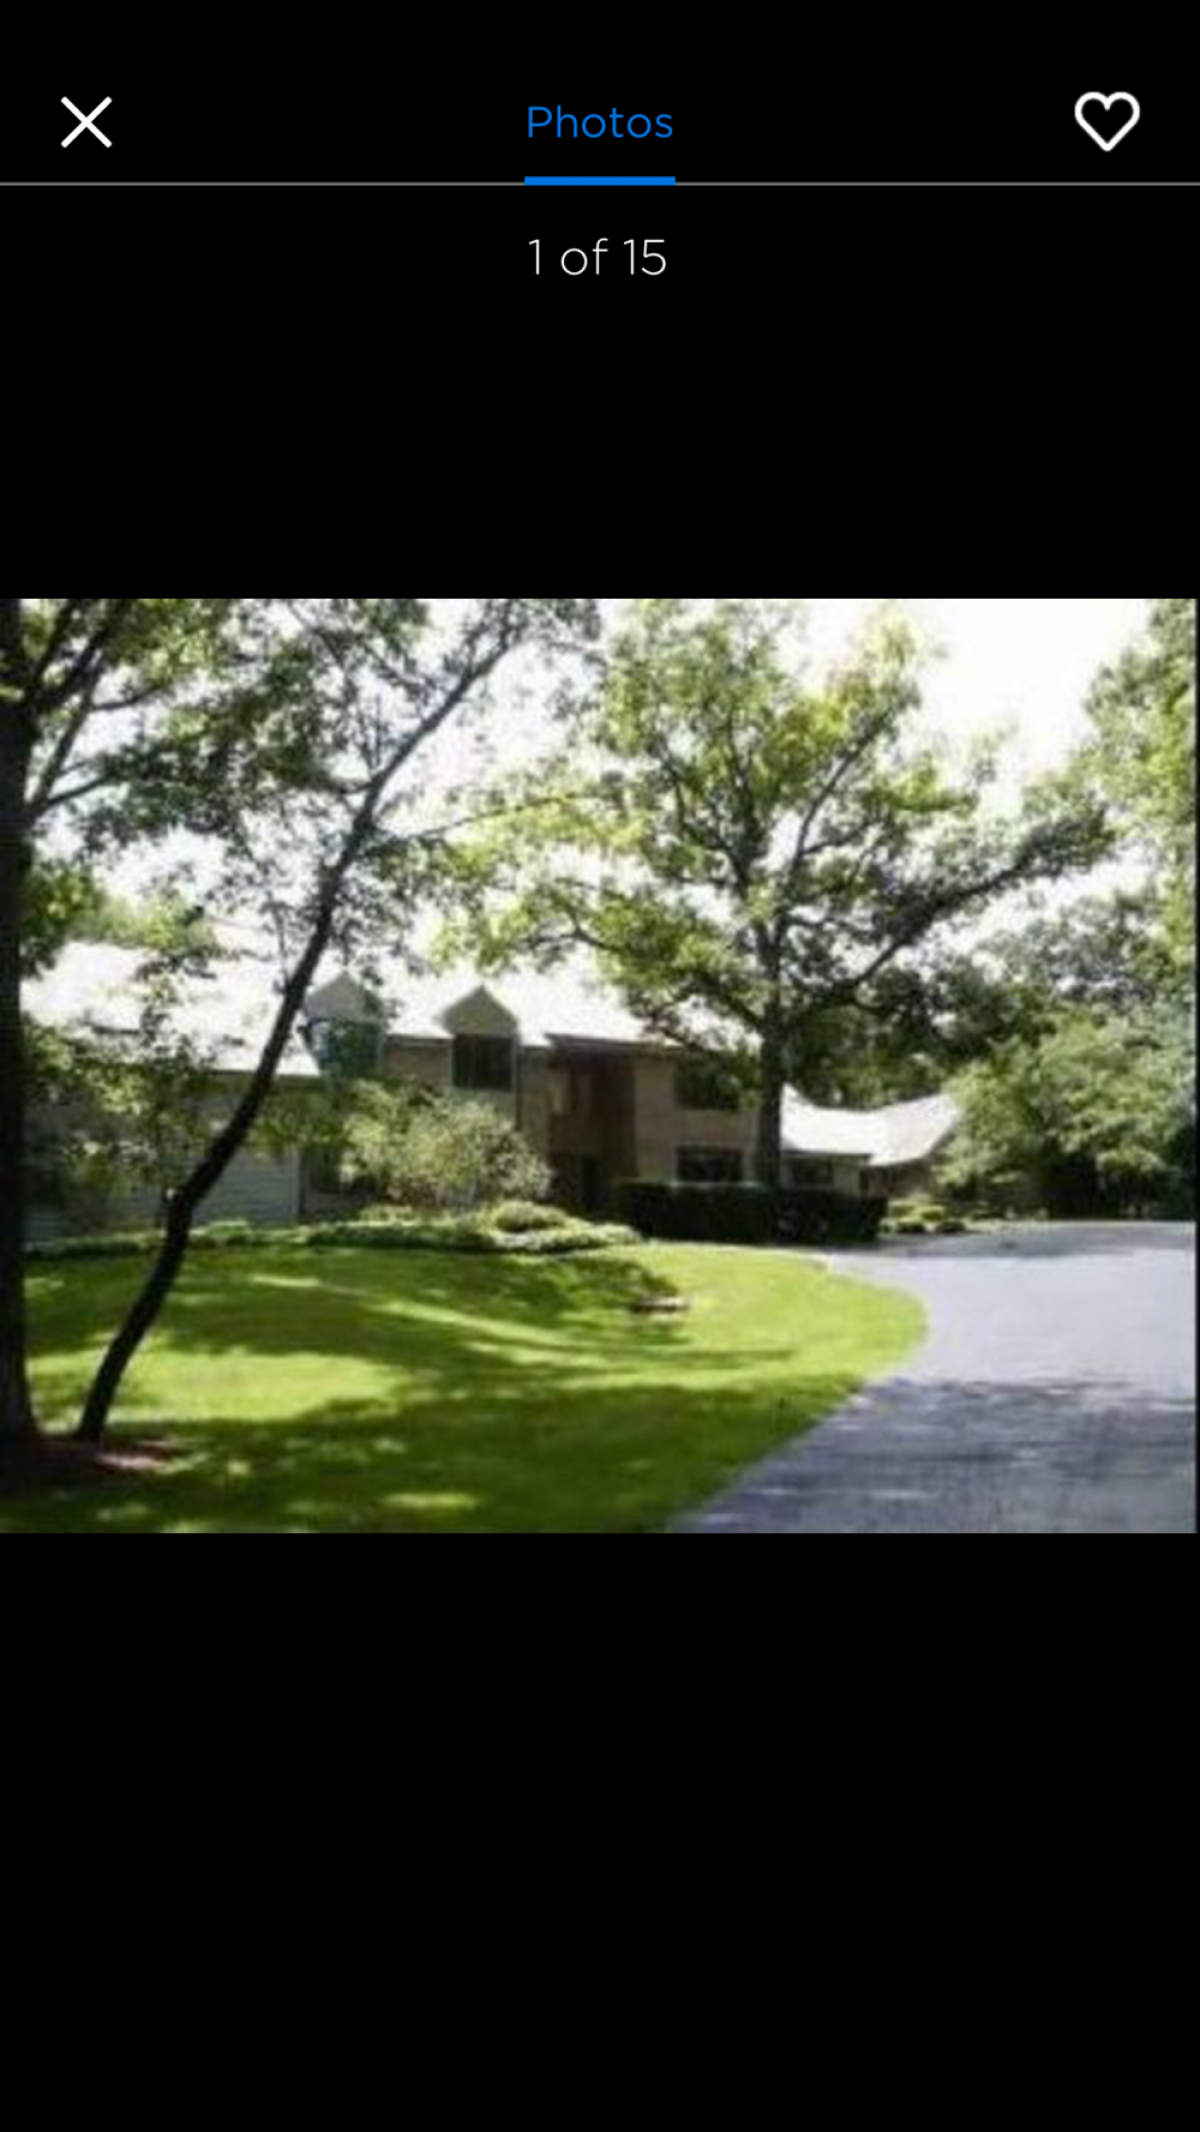 Property listed For Sale in Elgin, Illinois, United States